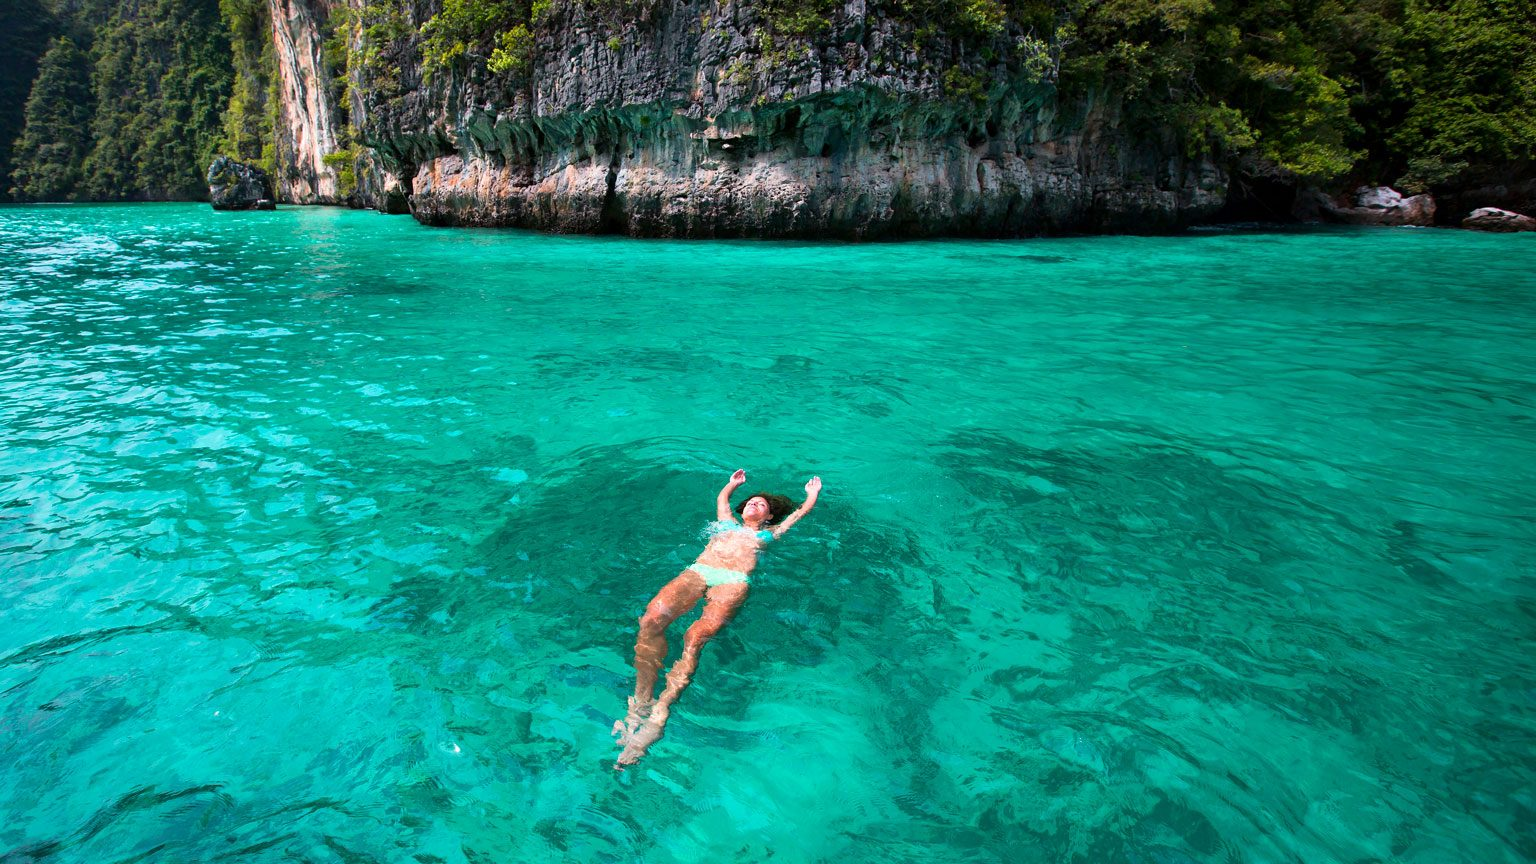 A woman relaxes while floating on her back in the warm turquoise waters of Thailand.